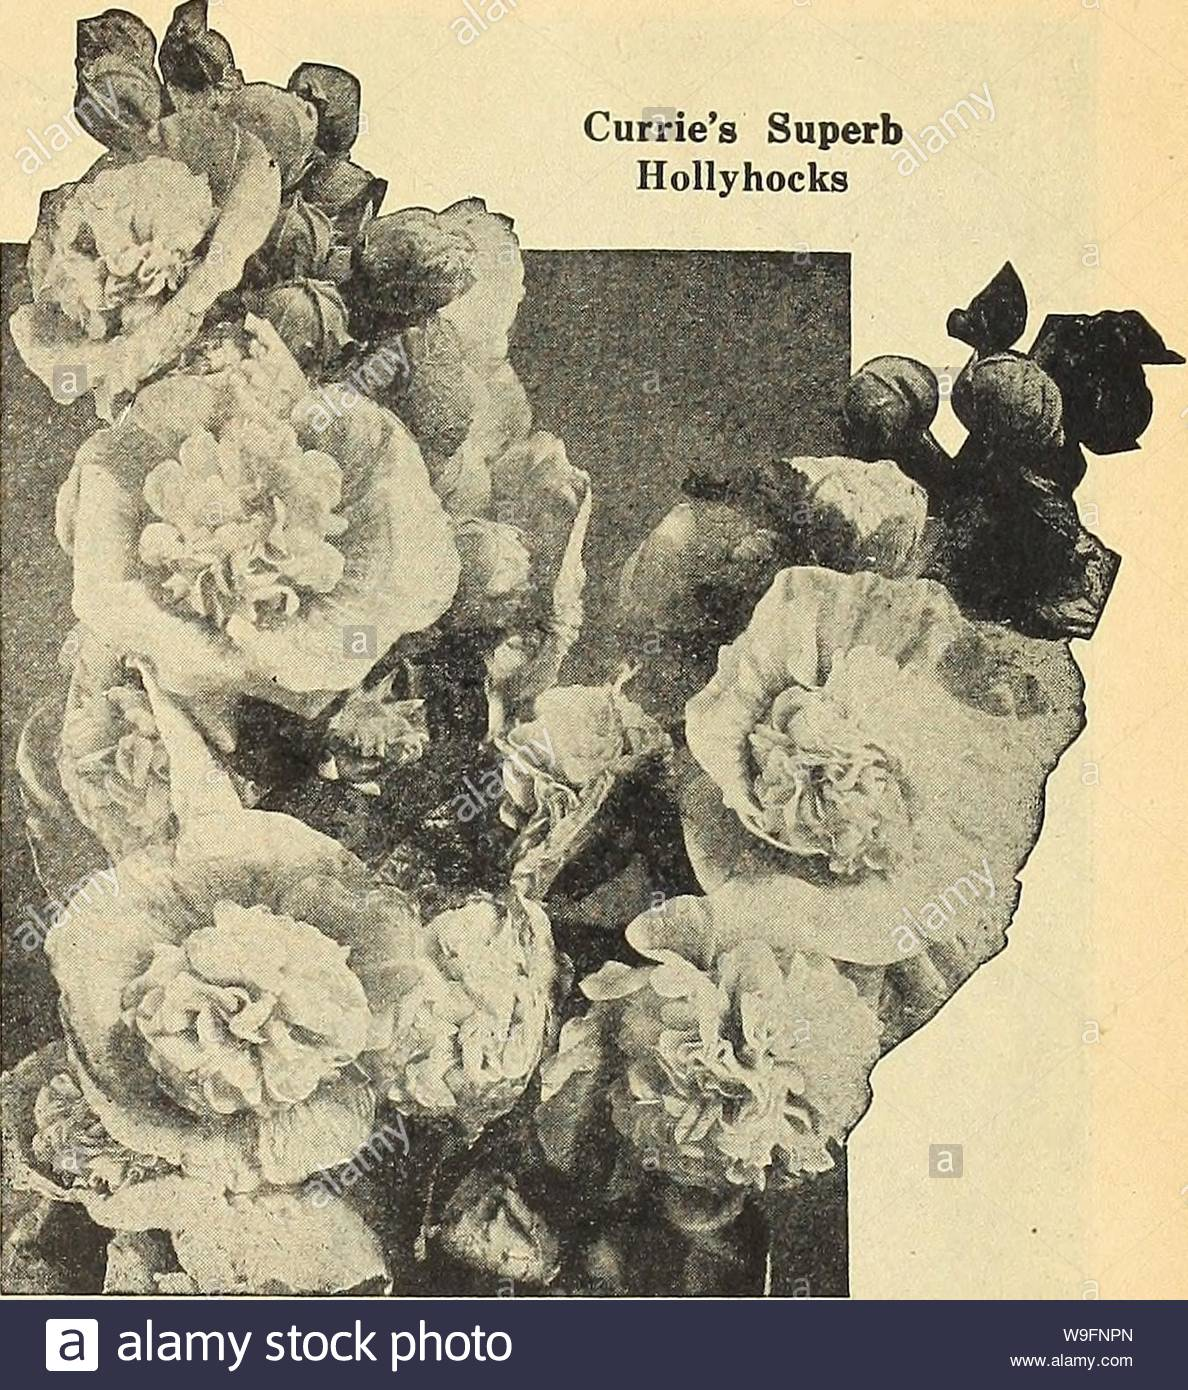 archive image from page 58 of curries garden annual 63rd curries garden annual 63rd year spring 1938 curriesgardenann19curr 4 year 1938 currie brothers co milwaukee wis page 55 curries superb hollyhocks the seed we offer has been saved from named vari eties of every known shade of color and can be con fidently re mended seed sown in june or july will produce plants for blooming the next summer h p new hollyhocks triumphthis new variety brings out an entirely distinct strain growing 4 to 5 feet high and is of a branching habit all the stems being studded with prettily W9FNPN